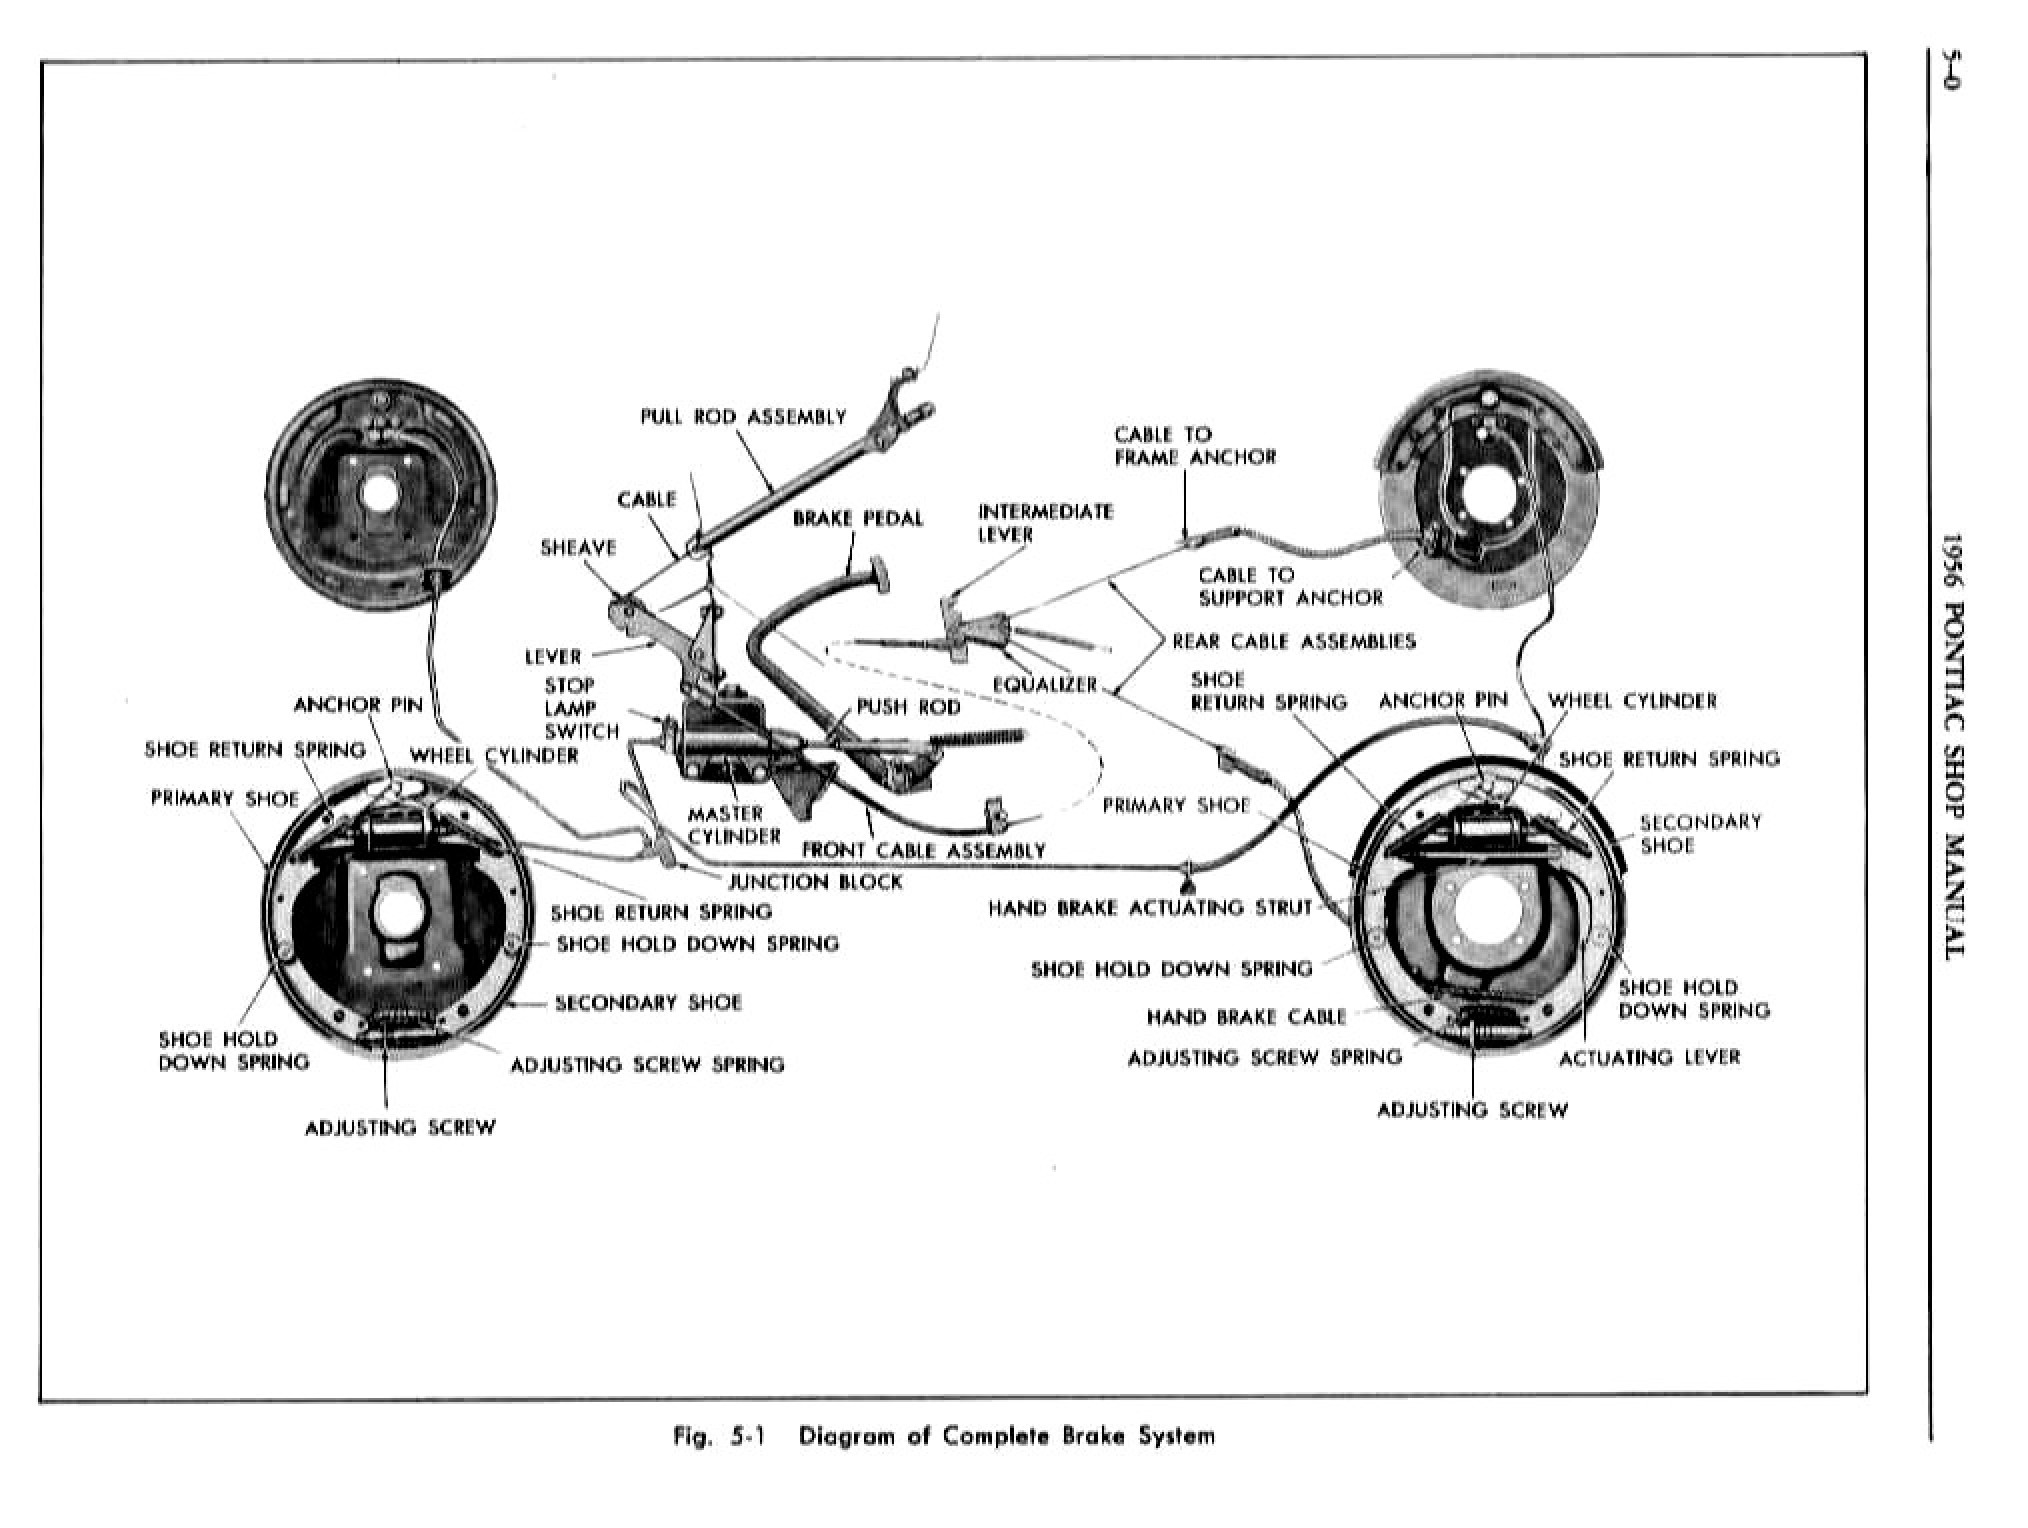 1956 Pontiac Shop Manual- Brakes Page 1 of 49